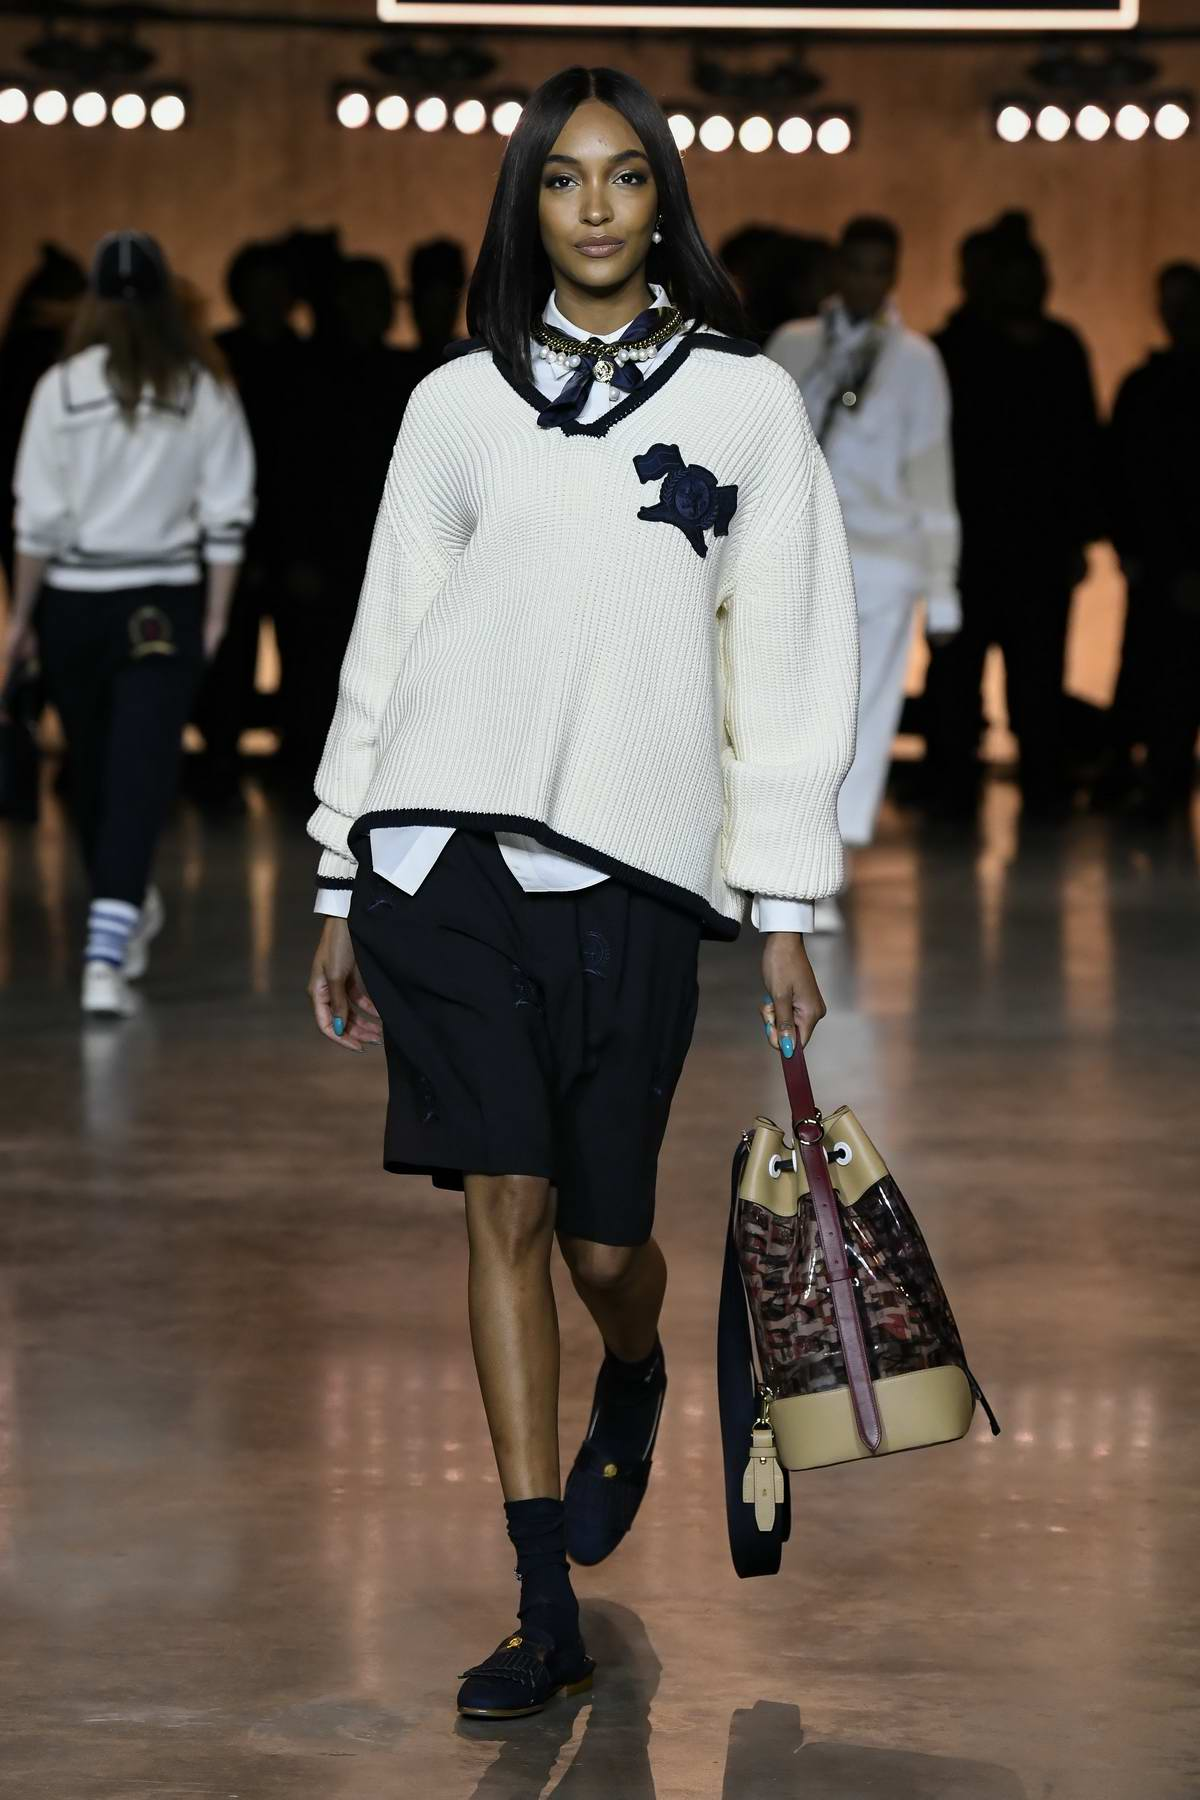 Jourdan Dunn walks the runway at Tommy Hilfiger AW20 show during London Fashion Week in London, UK